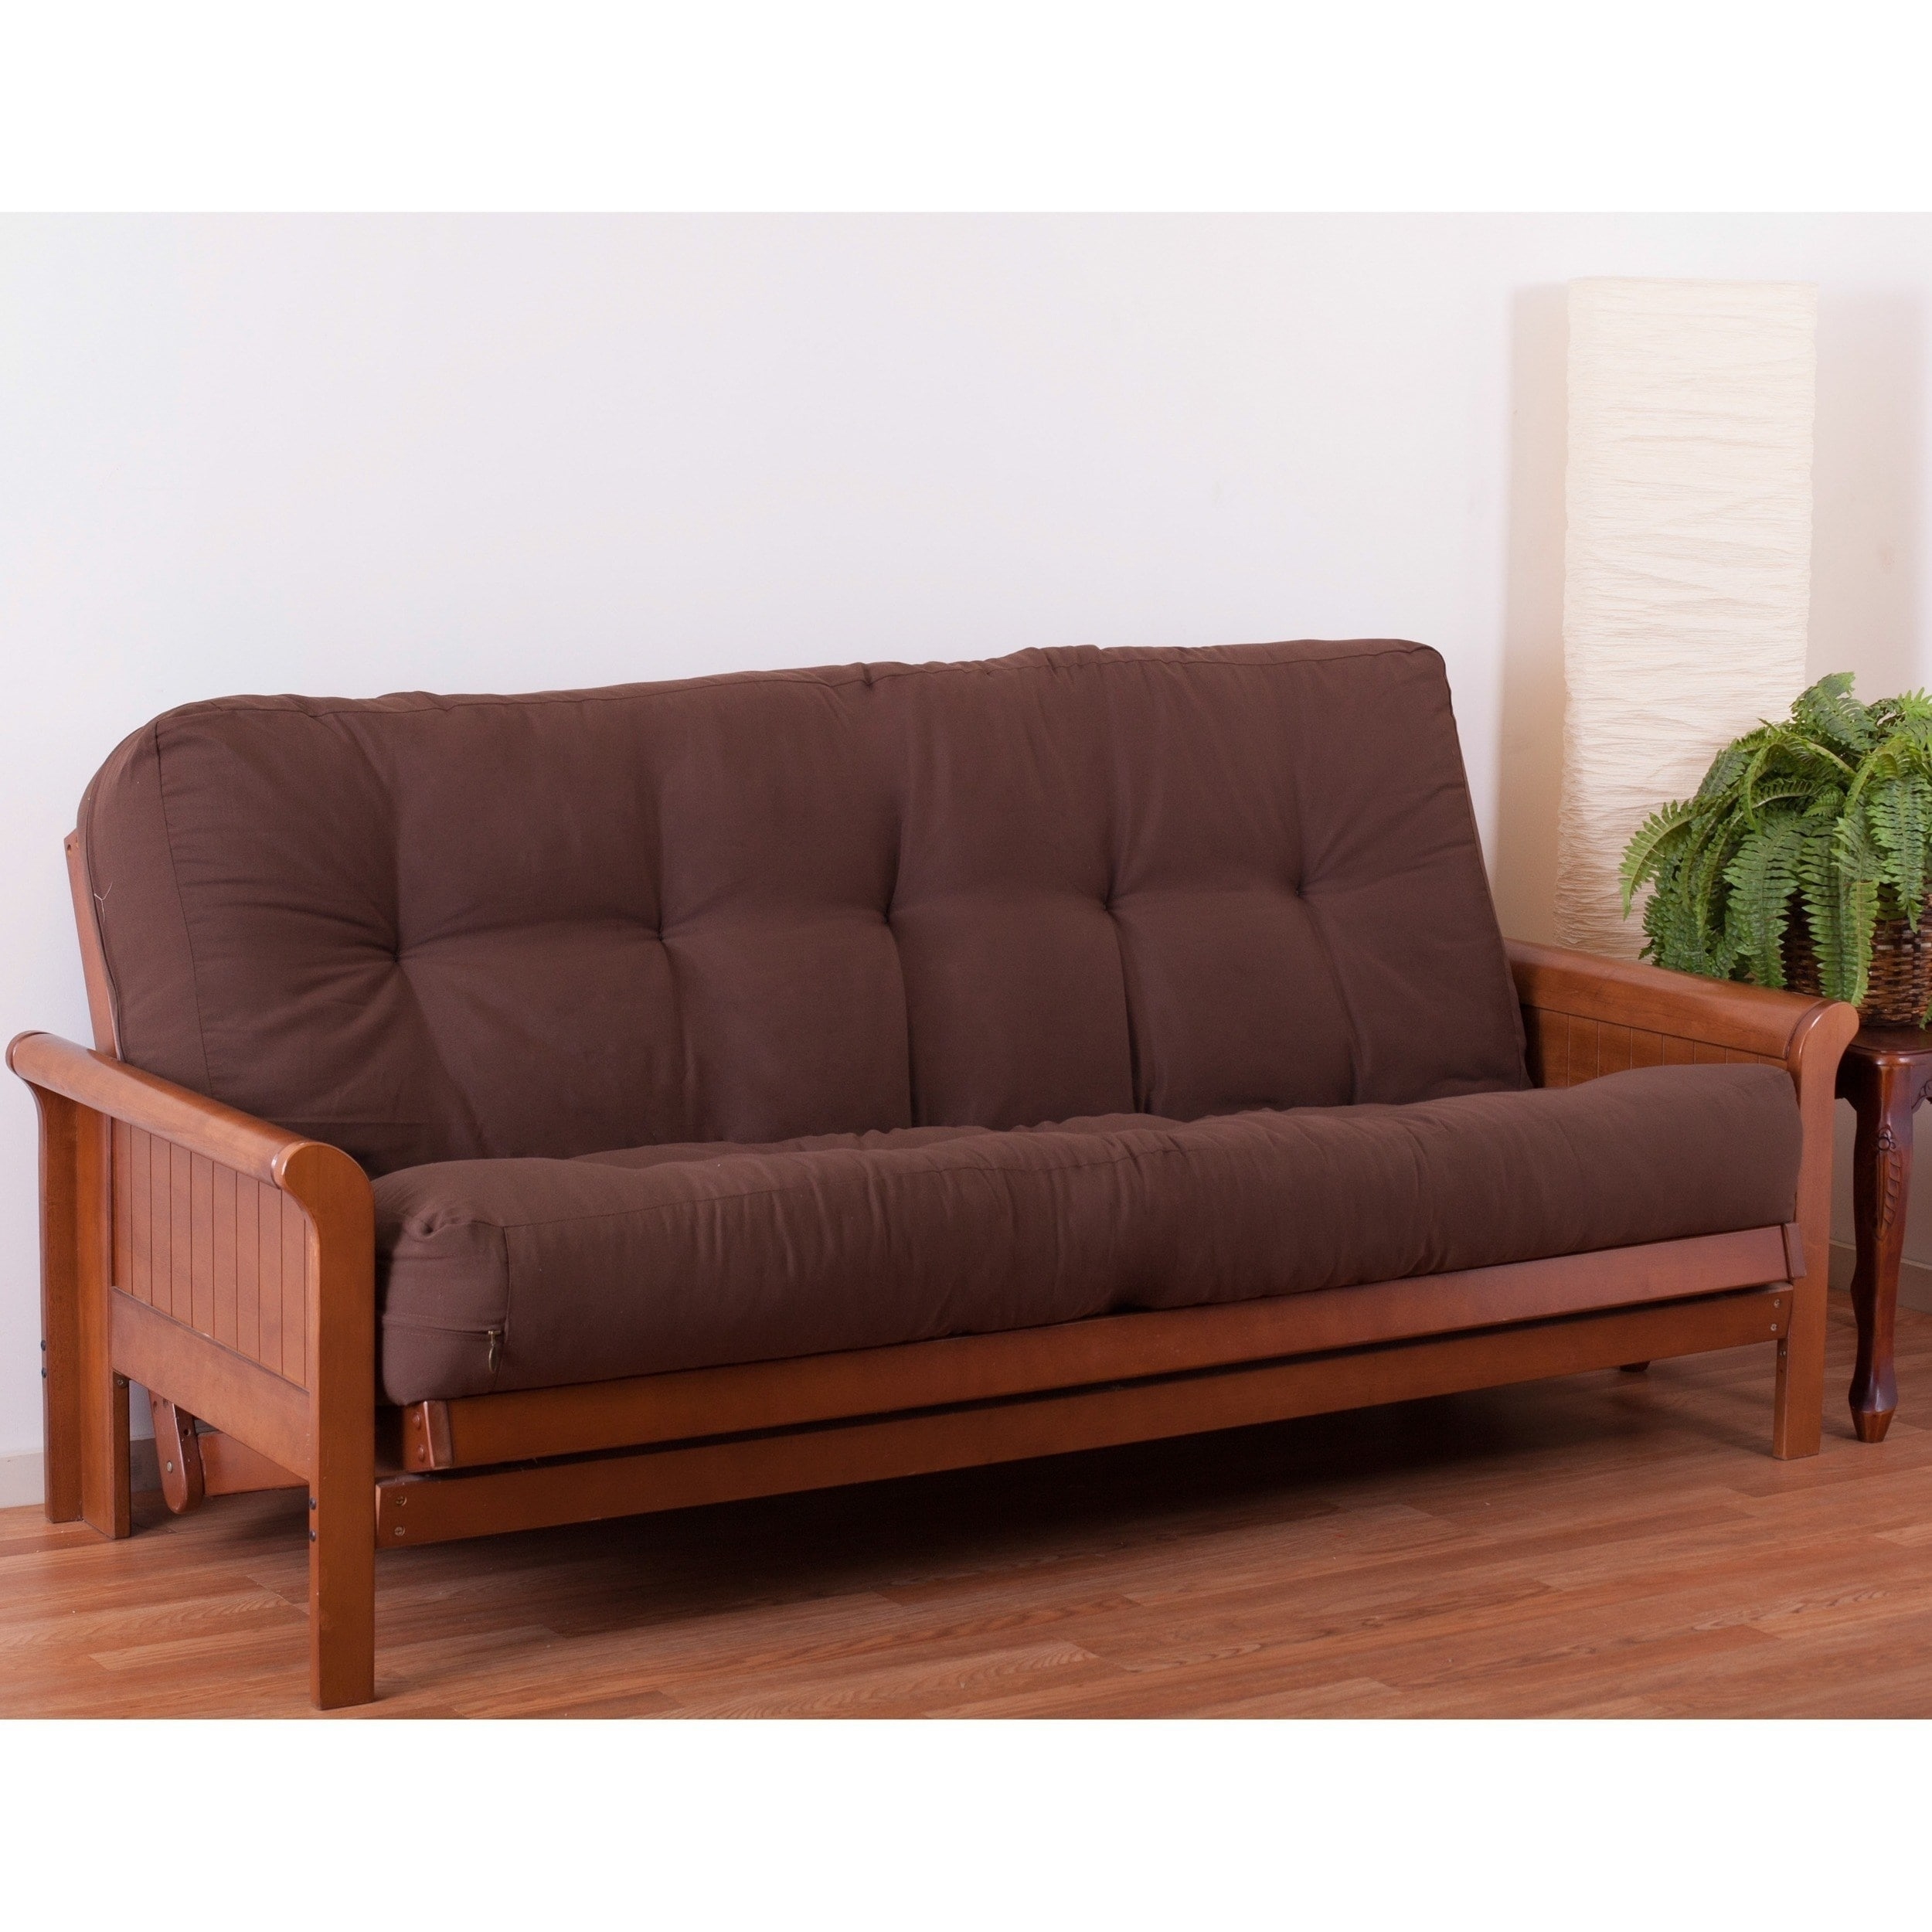 Porch Den Wolfchase Guthrie 10 Inch Full Size Futon Mattress On Free Shipping Today Com 20469363